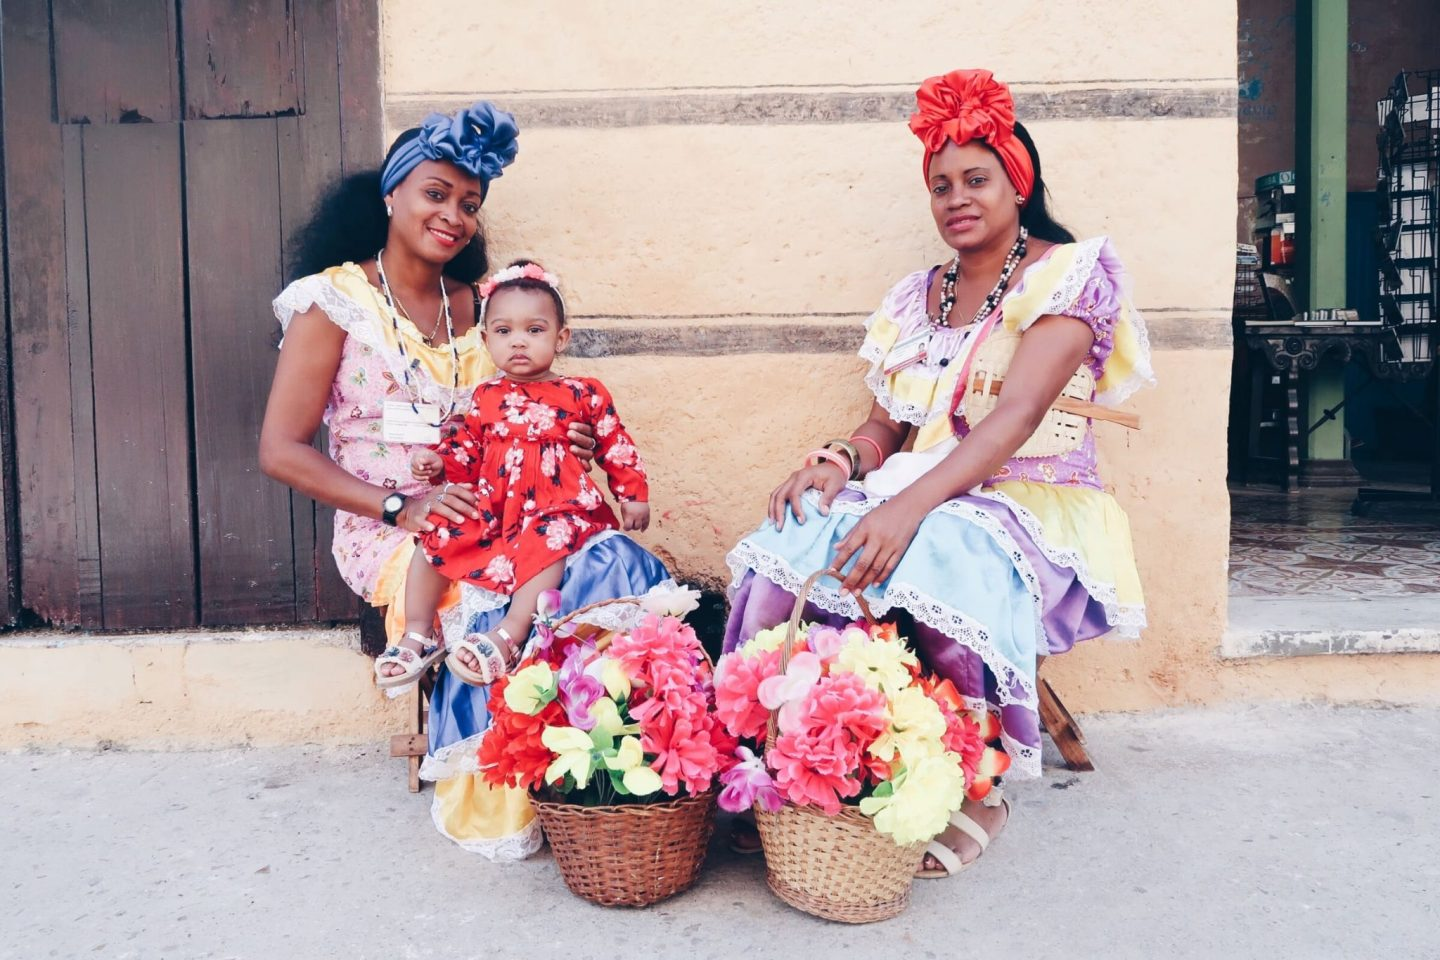 Cuba travel with kids